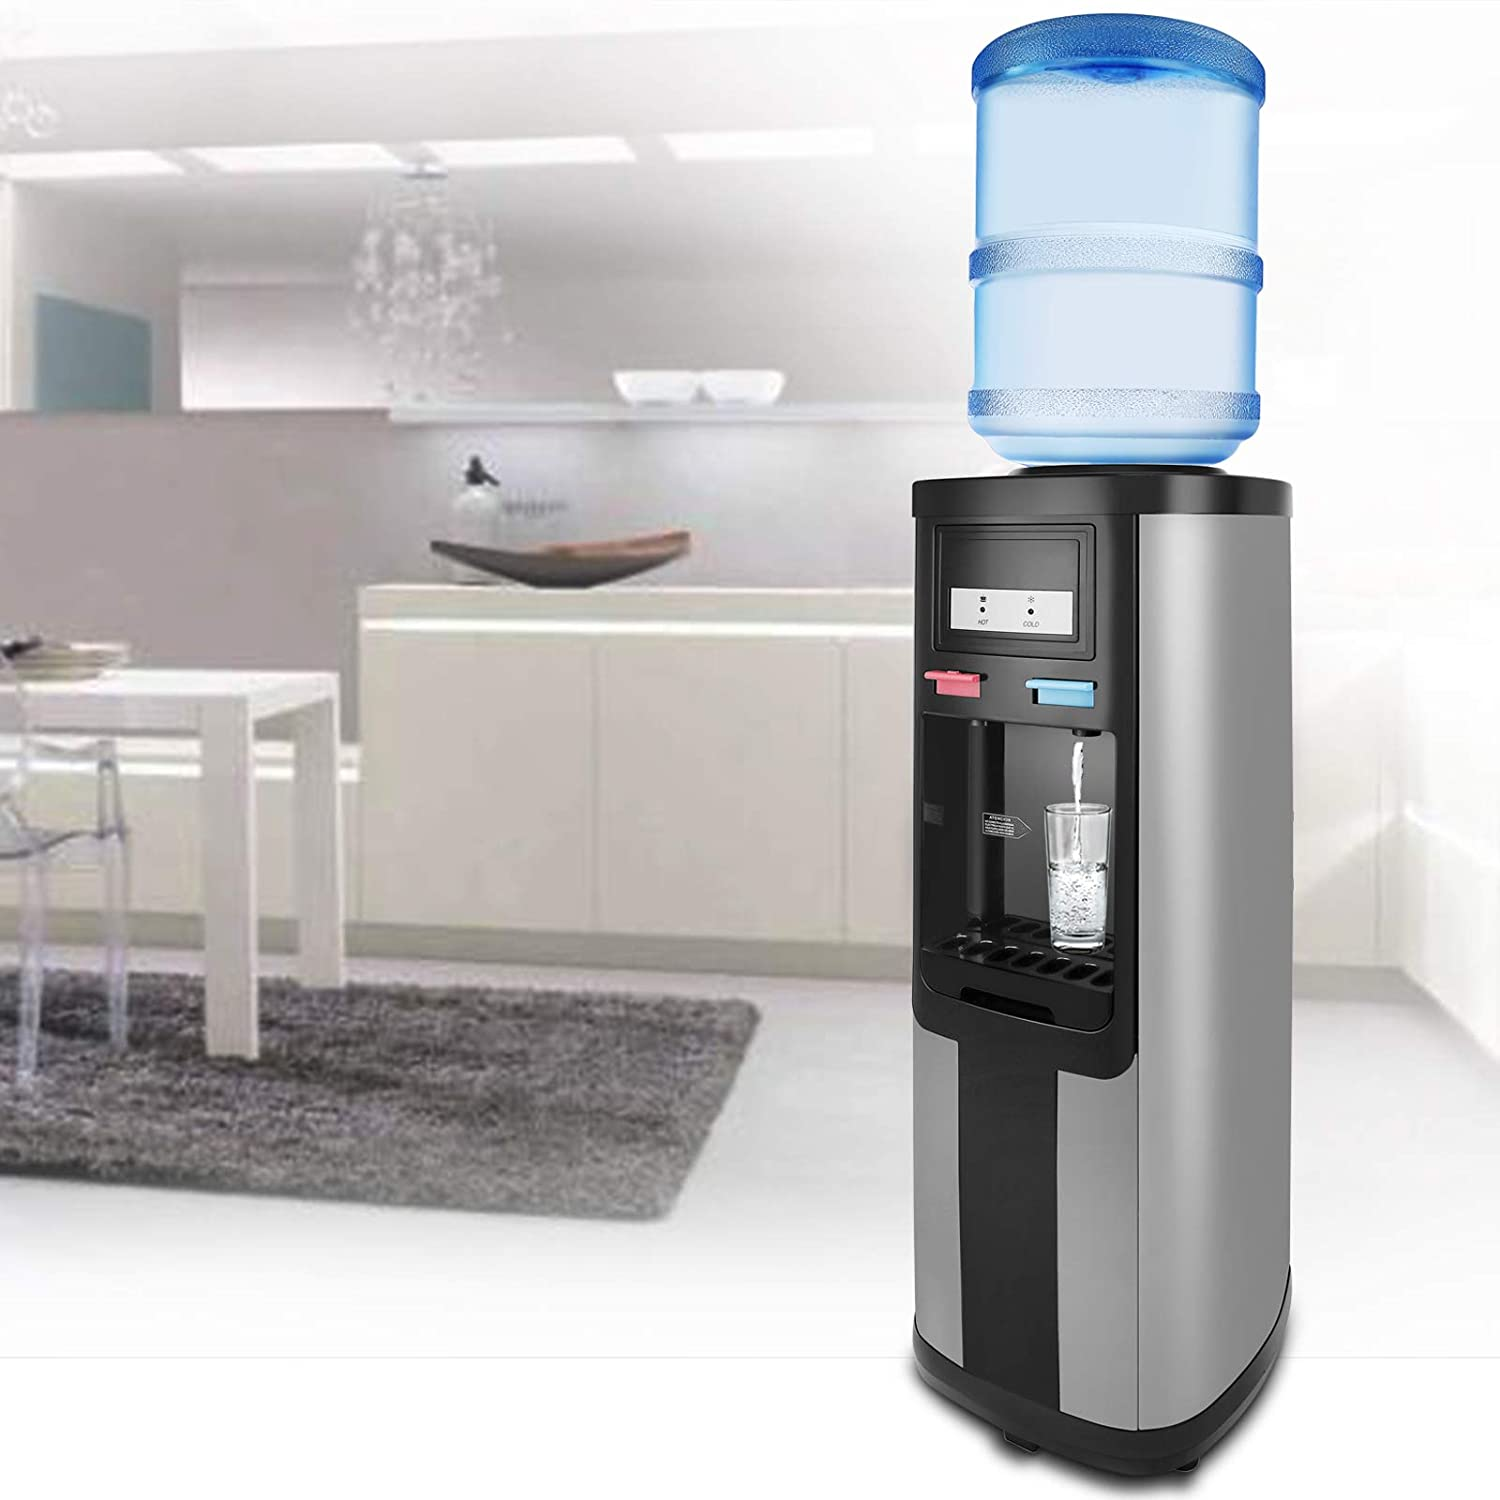 4-EVER Water Cooler